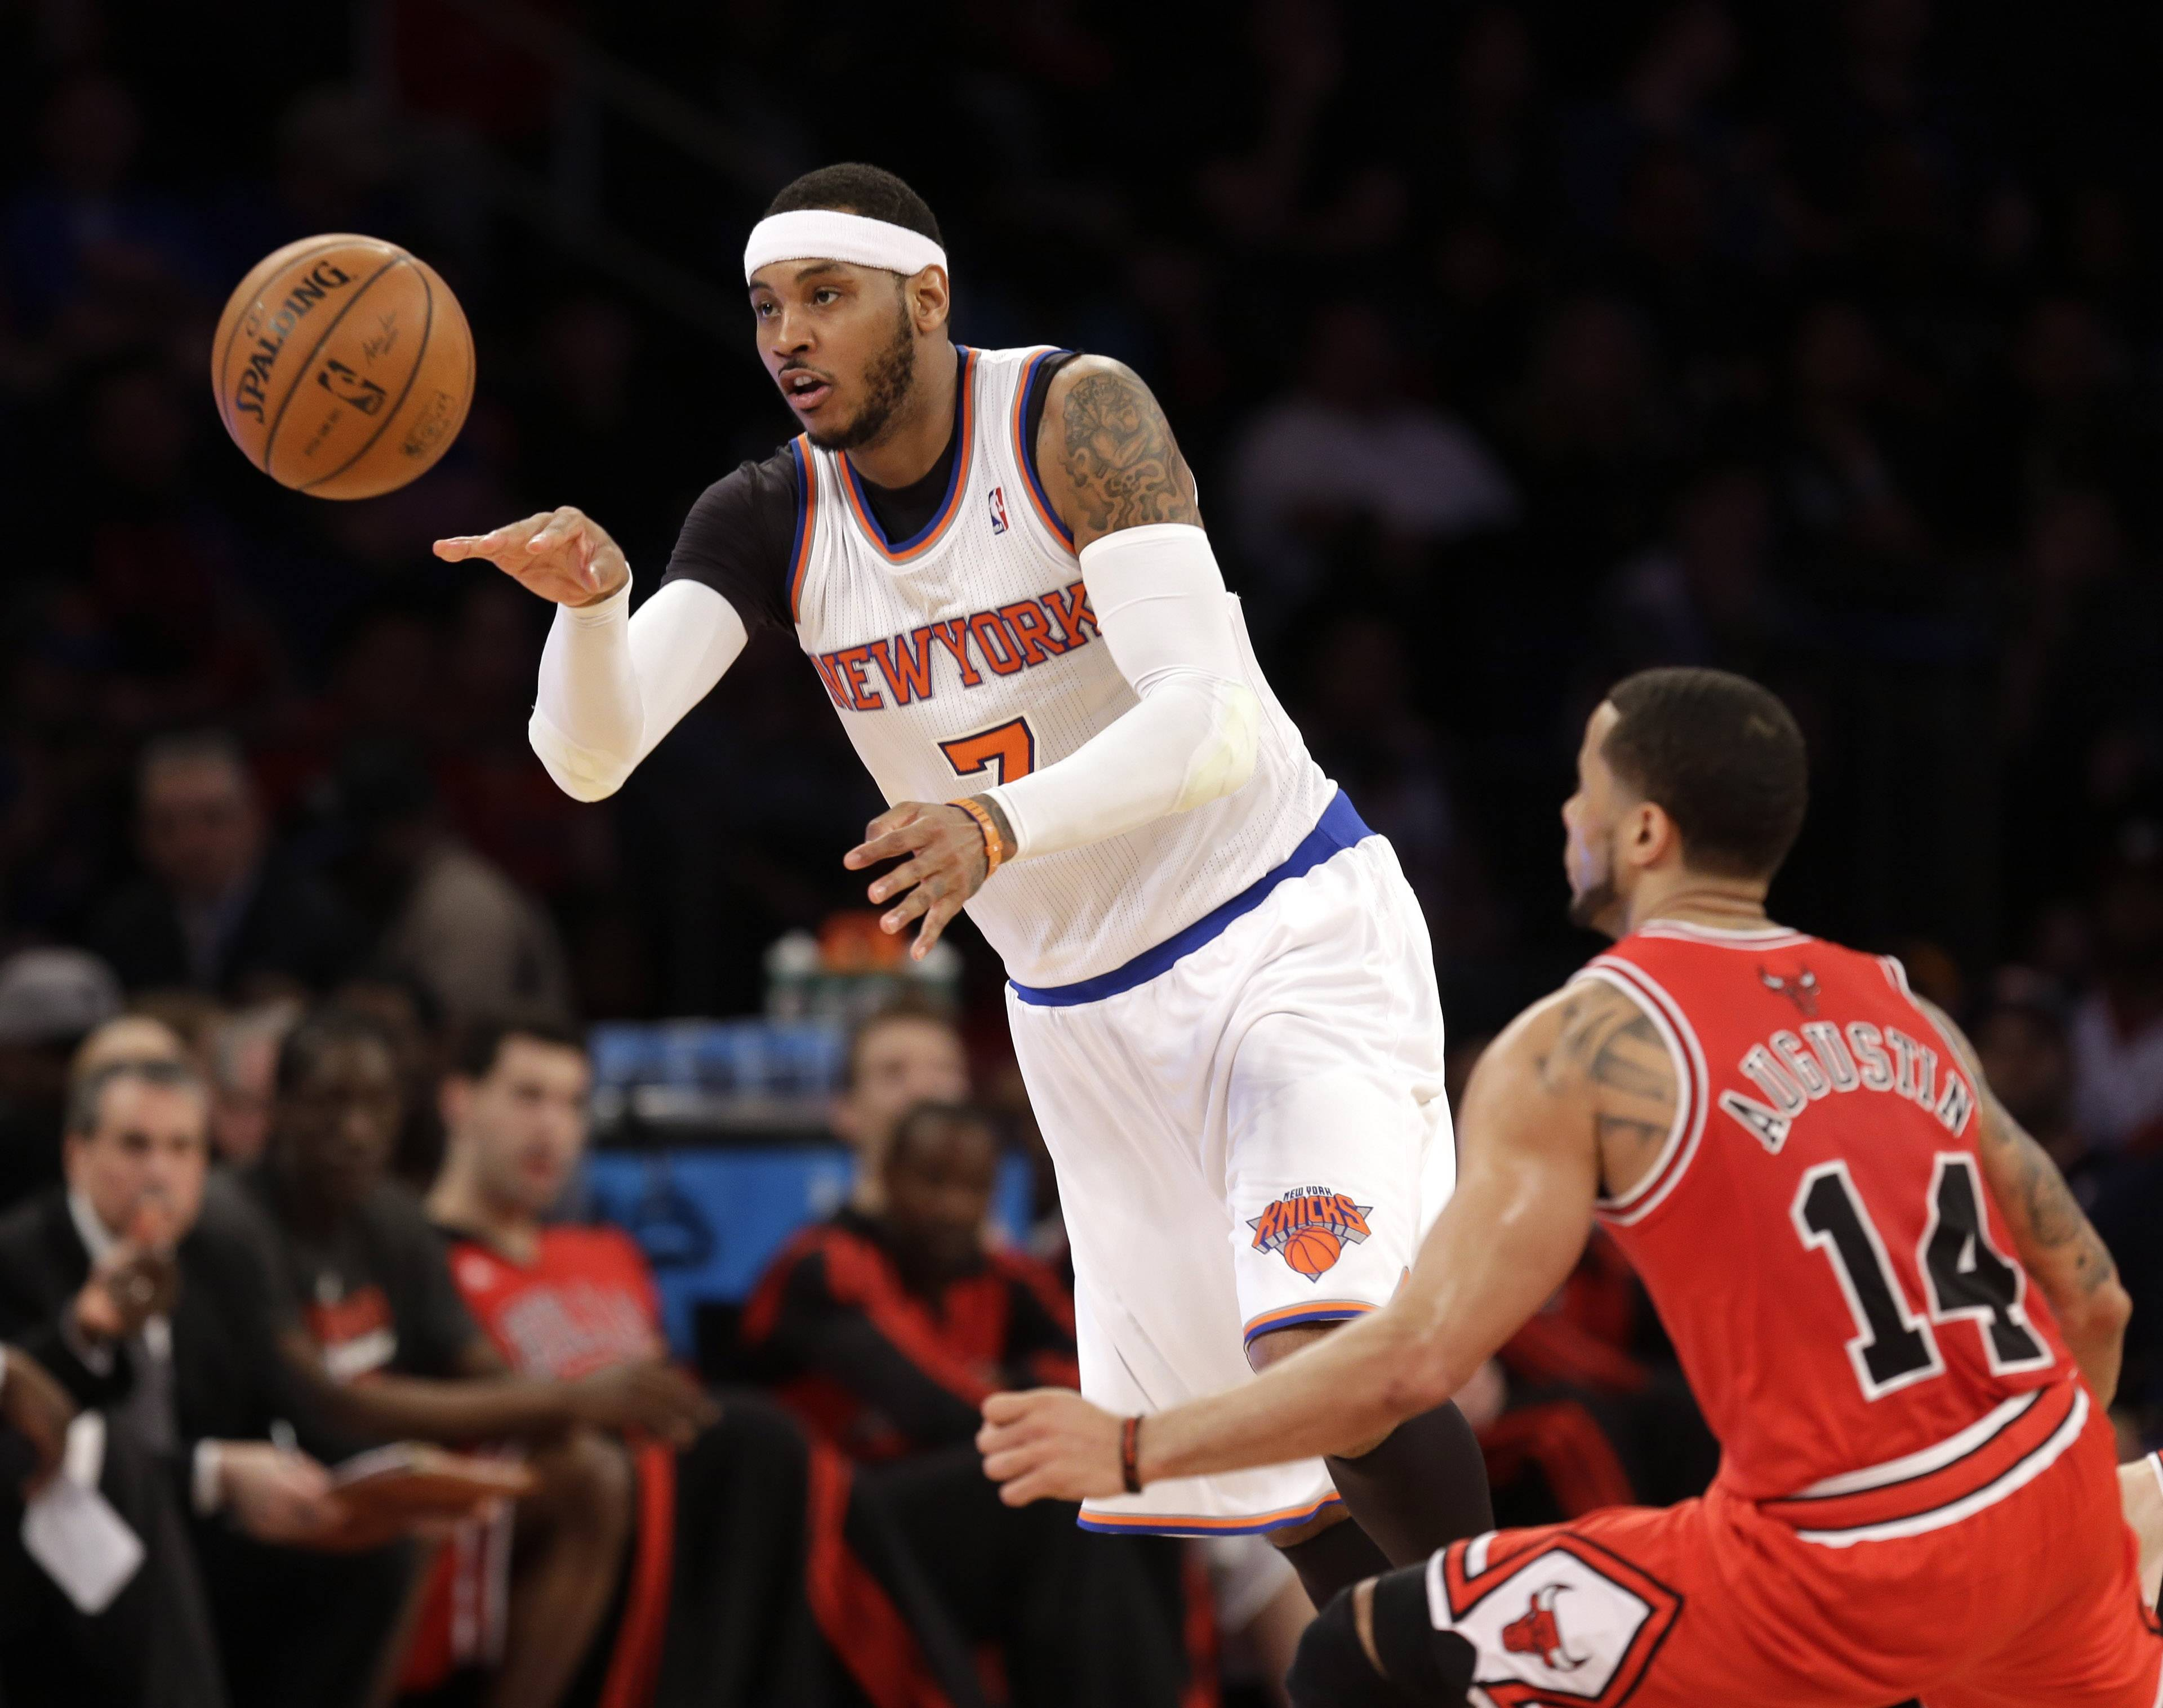 During the off-season, the Bulls must obtain free-agent Carmelo Anthony, left, to provide much-needed offense, according to Mike North.